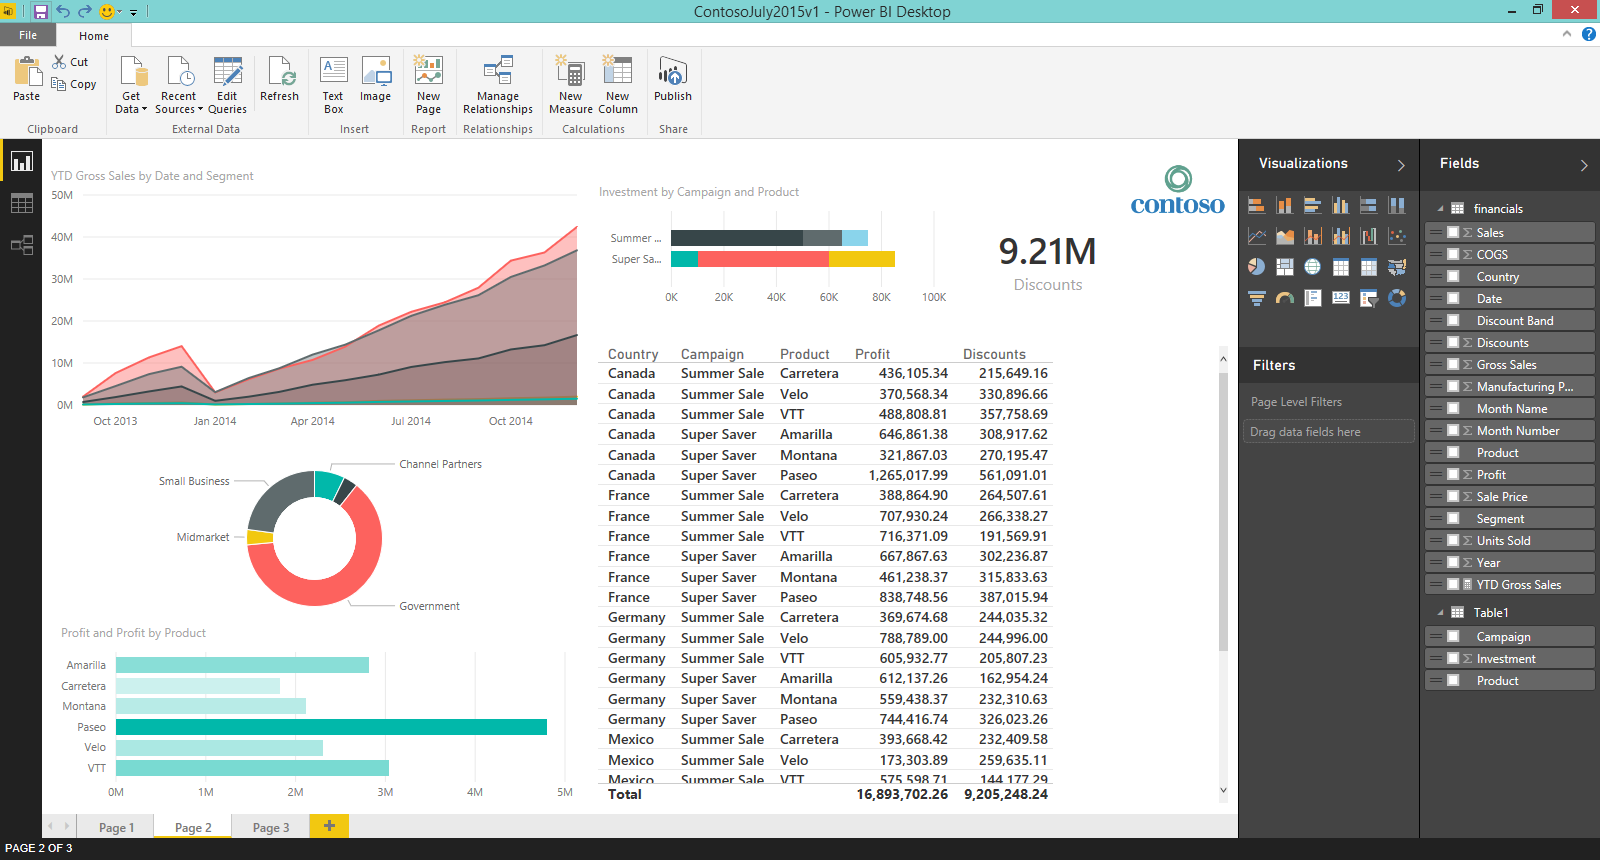 Power BI Desktop 2